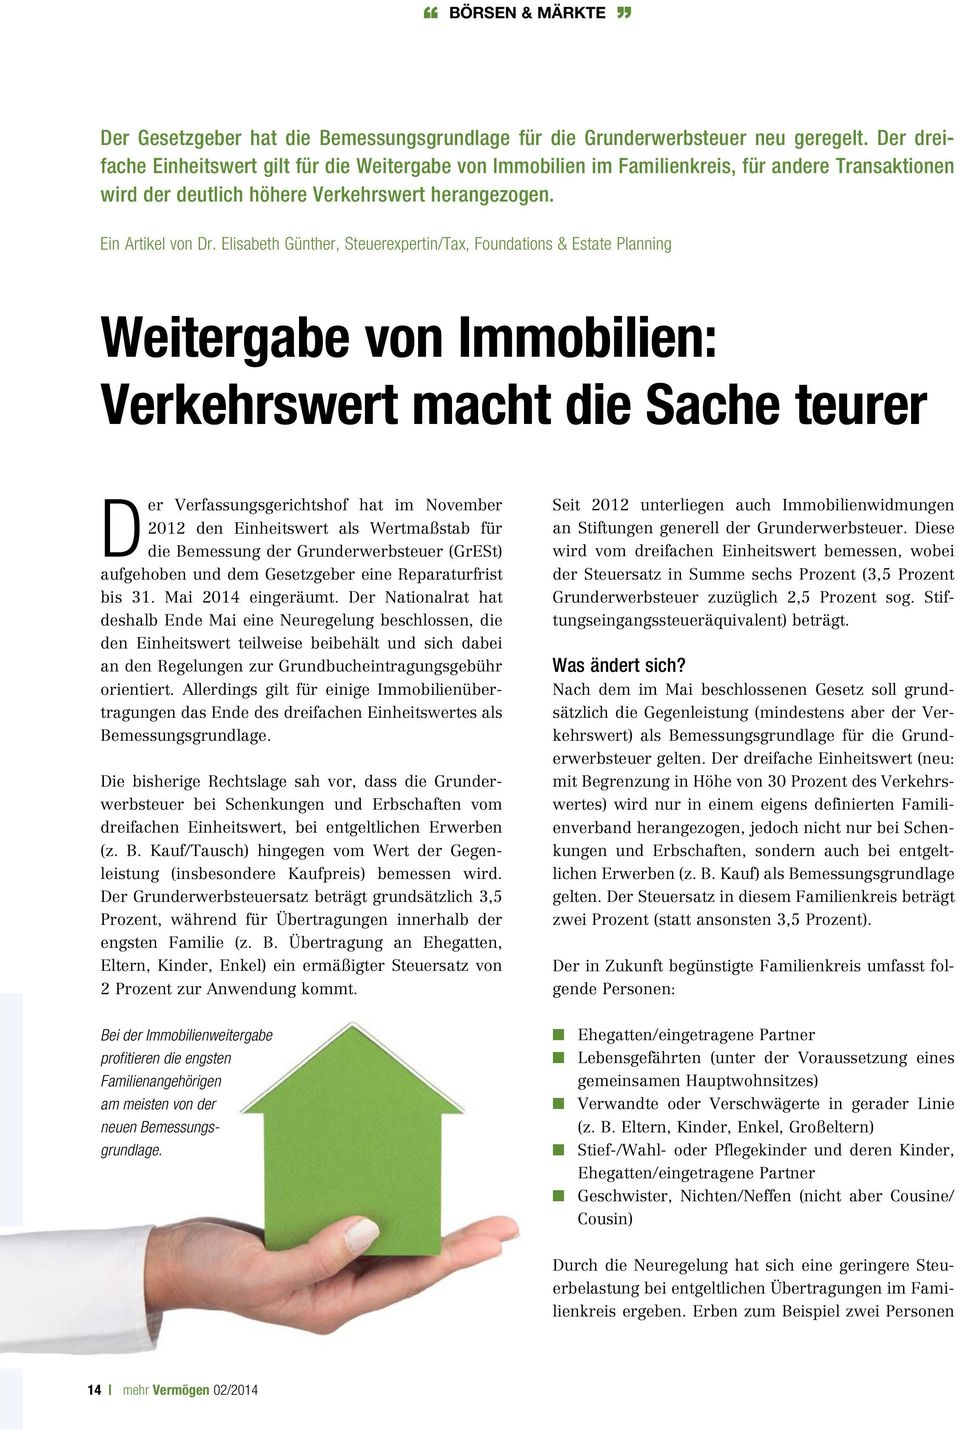 Elisabeth Günther, Steuerexpertin/Tax, Foundations & Estate Planning Weitergabe von Immobilien: Verkehrswert macht die Sache teurer Der Verfassungsgerichtshof hat im November 2012 den Einheitswert